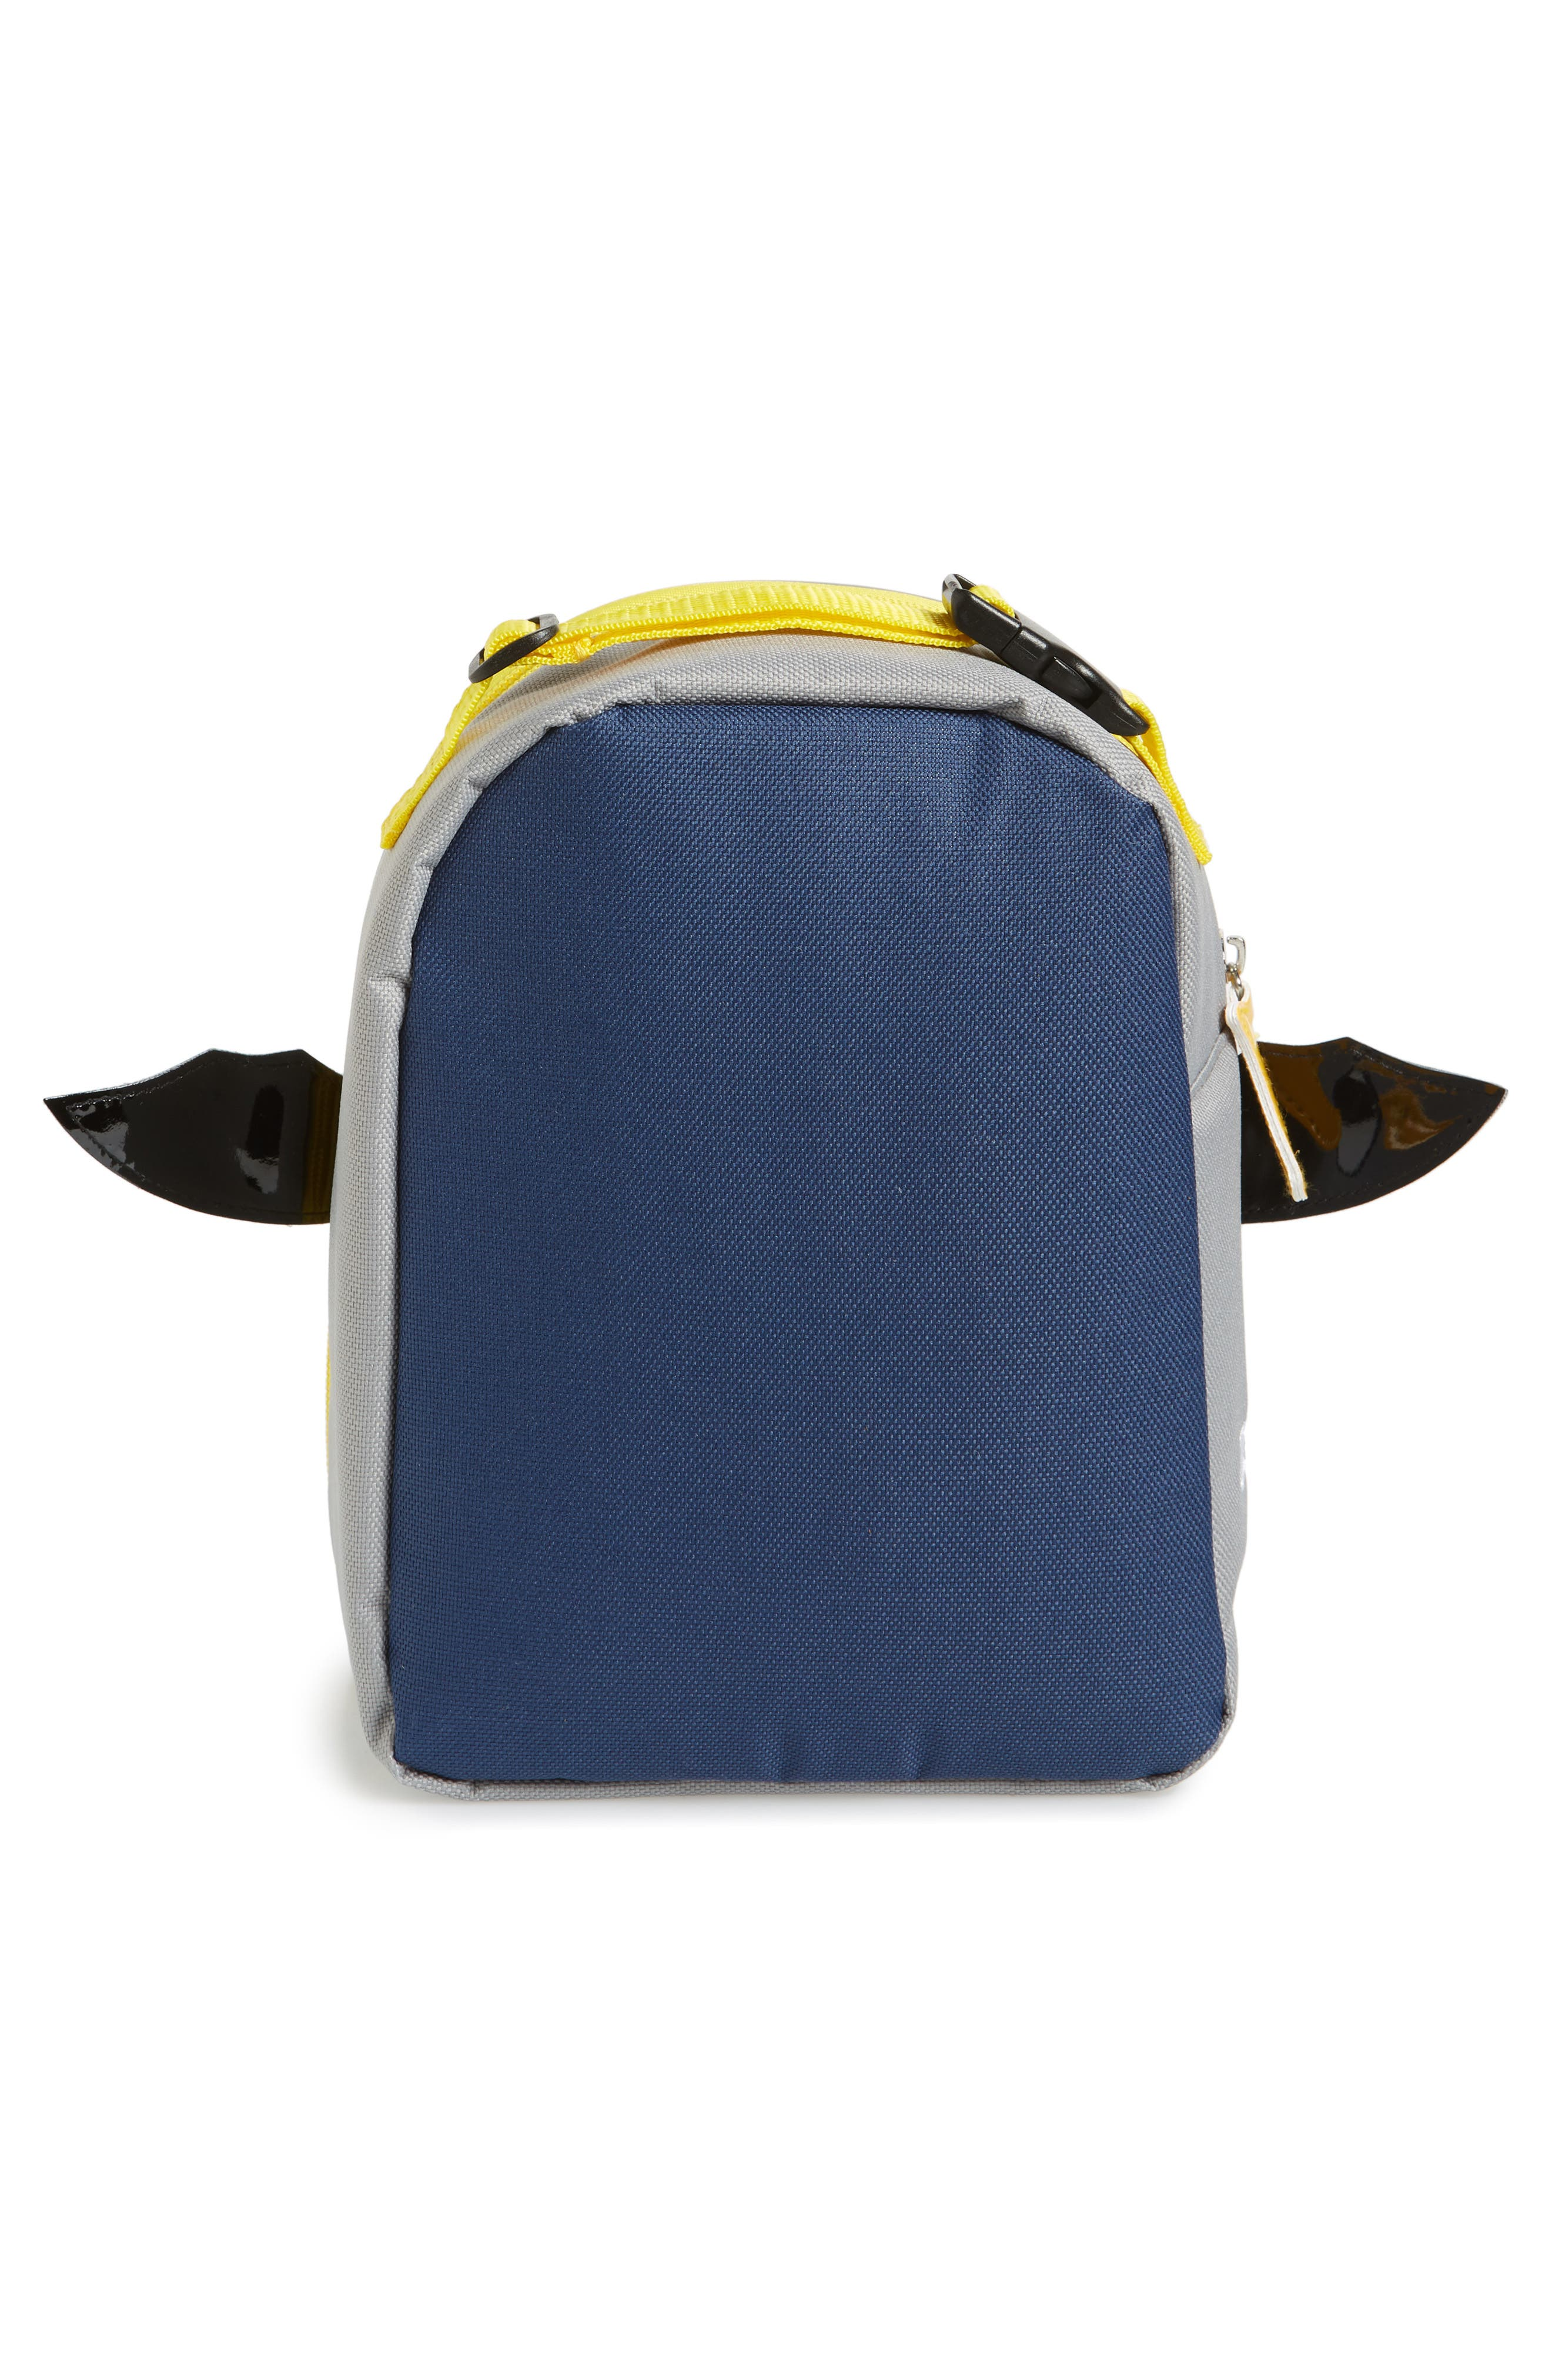 Zoo Lunchie - Bat Insulated Lunch Bag,                             Alternate thumbnail 2, color,                             NAVY BLUE